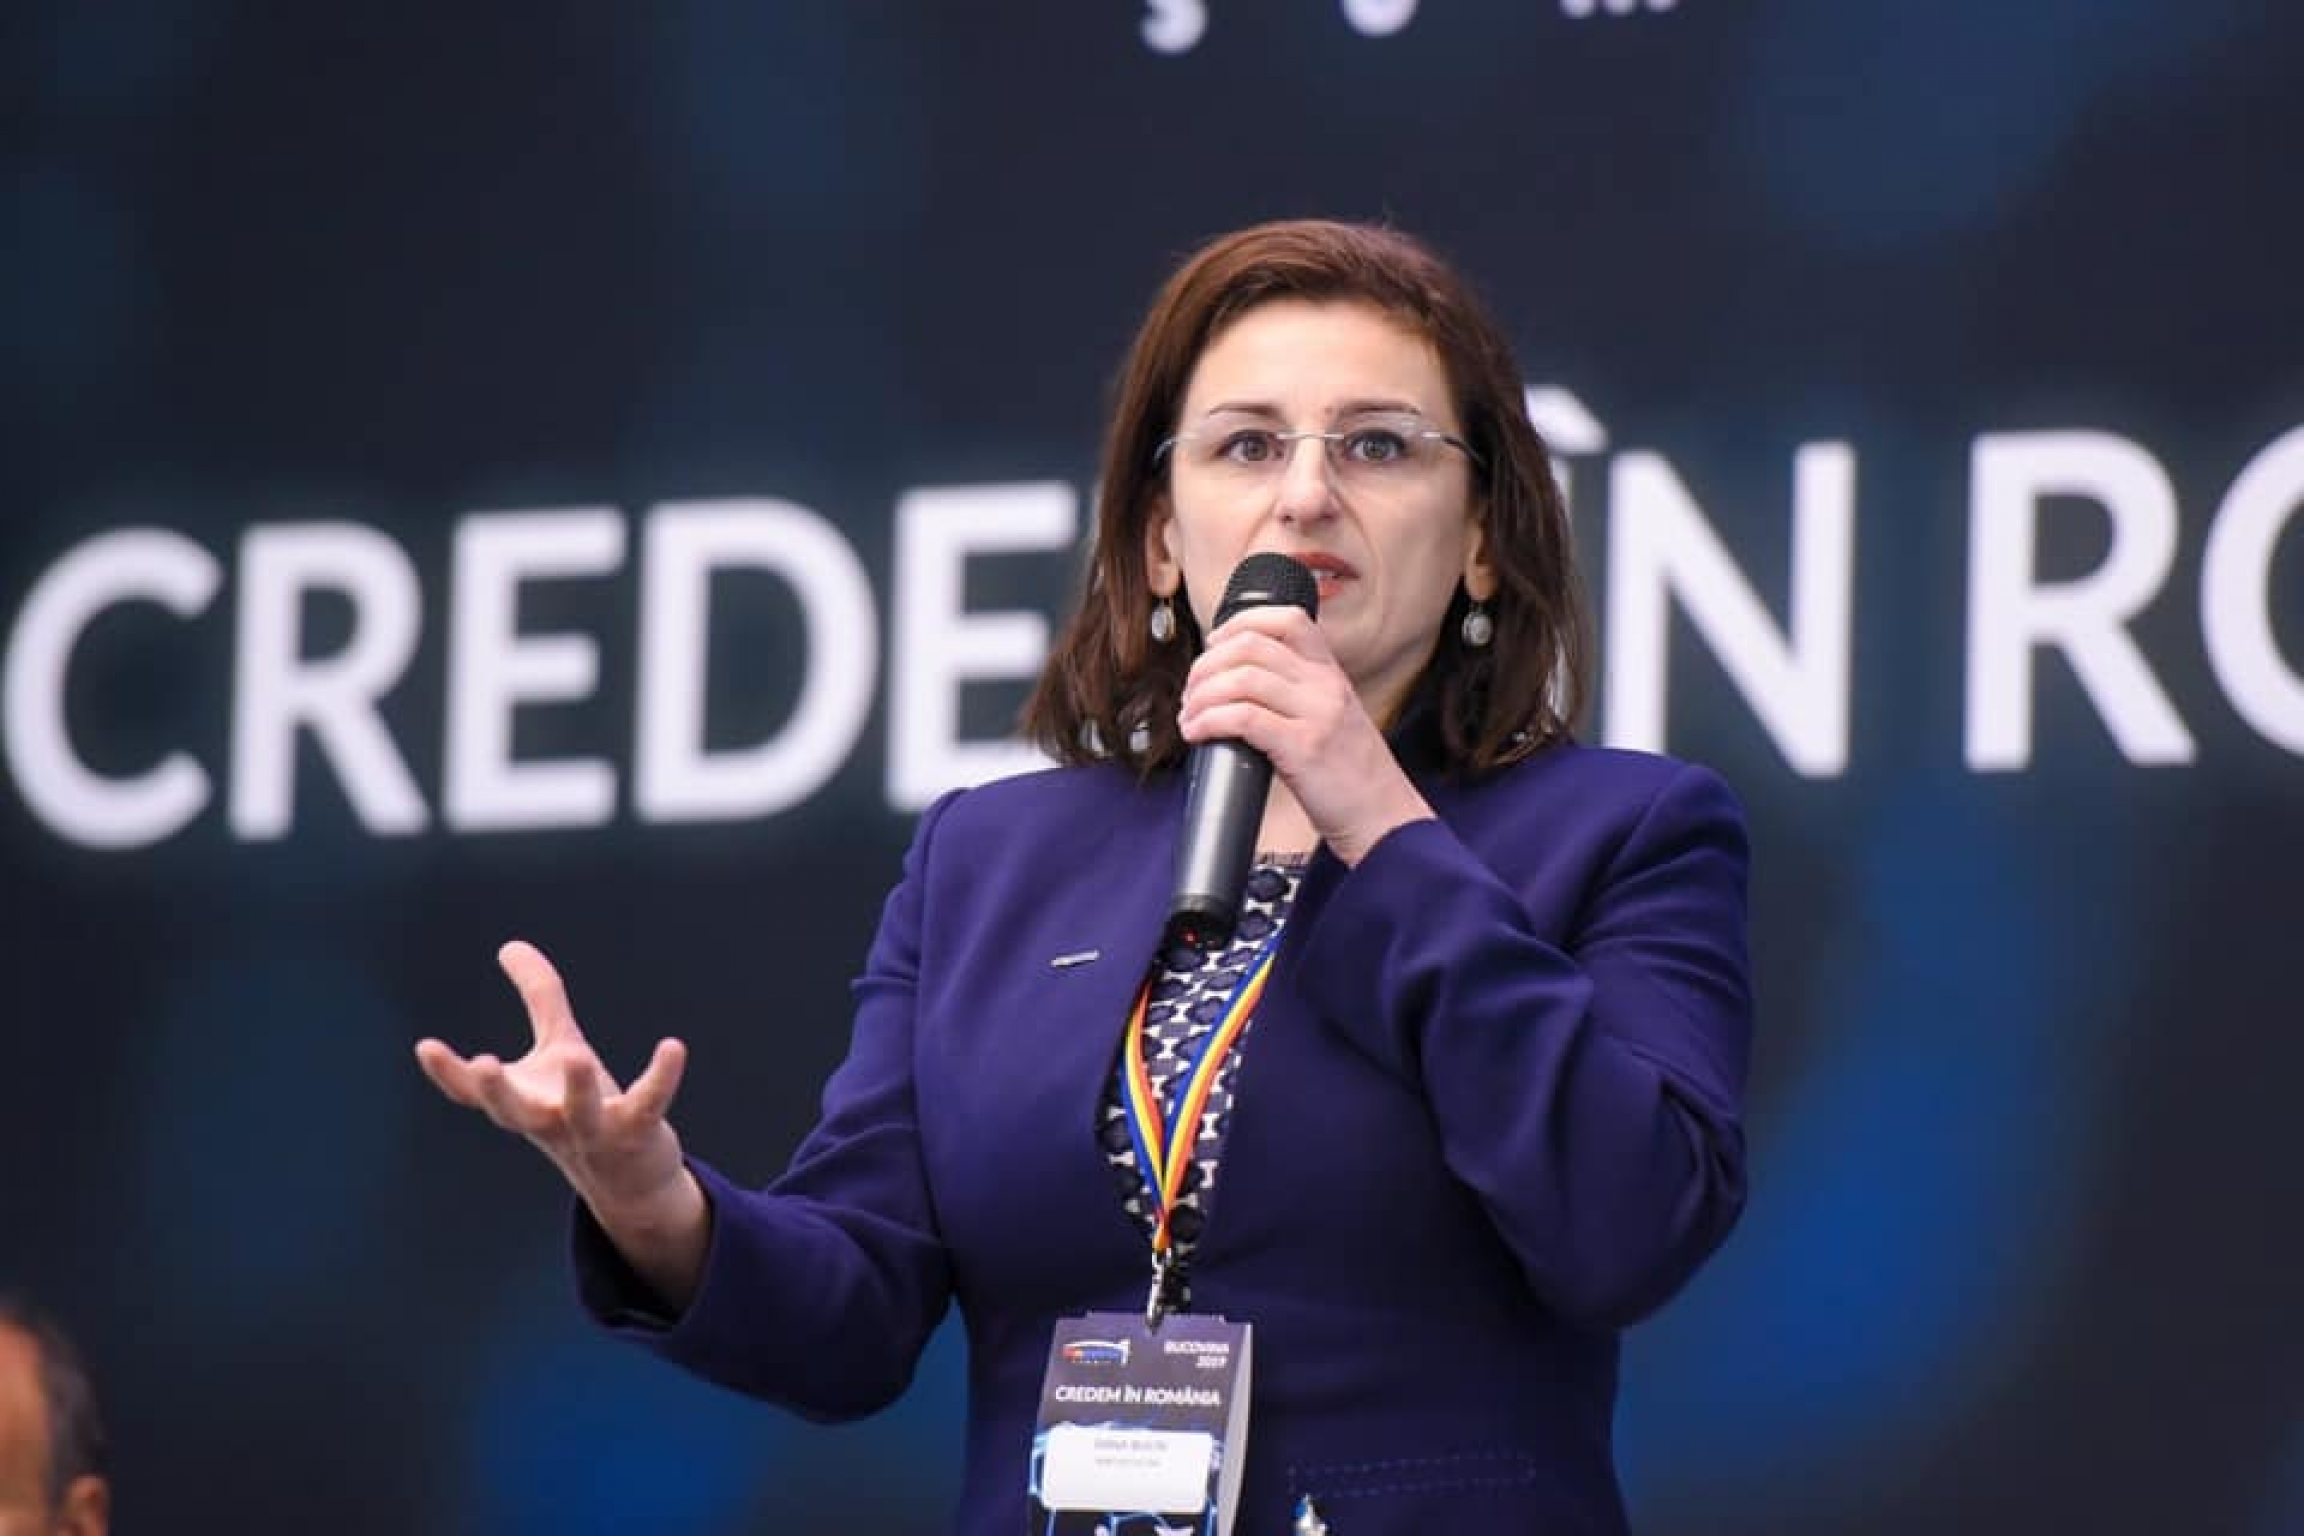 Woman in purple suit speaks with a microphone